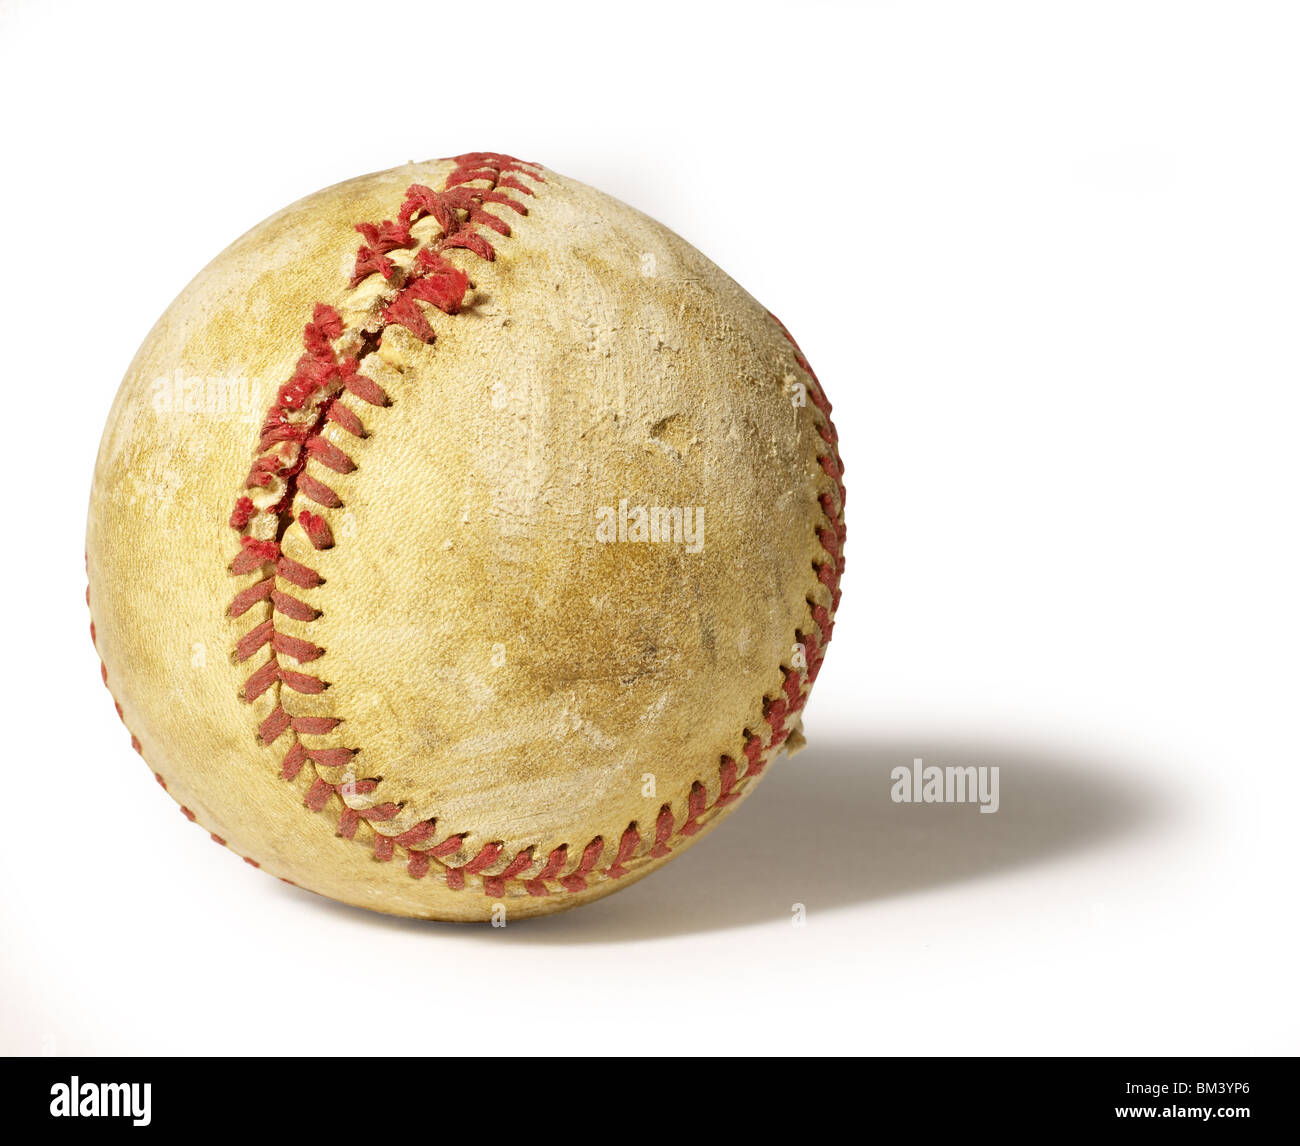 Baseball vieux Photo Stock